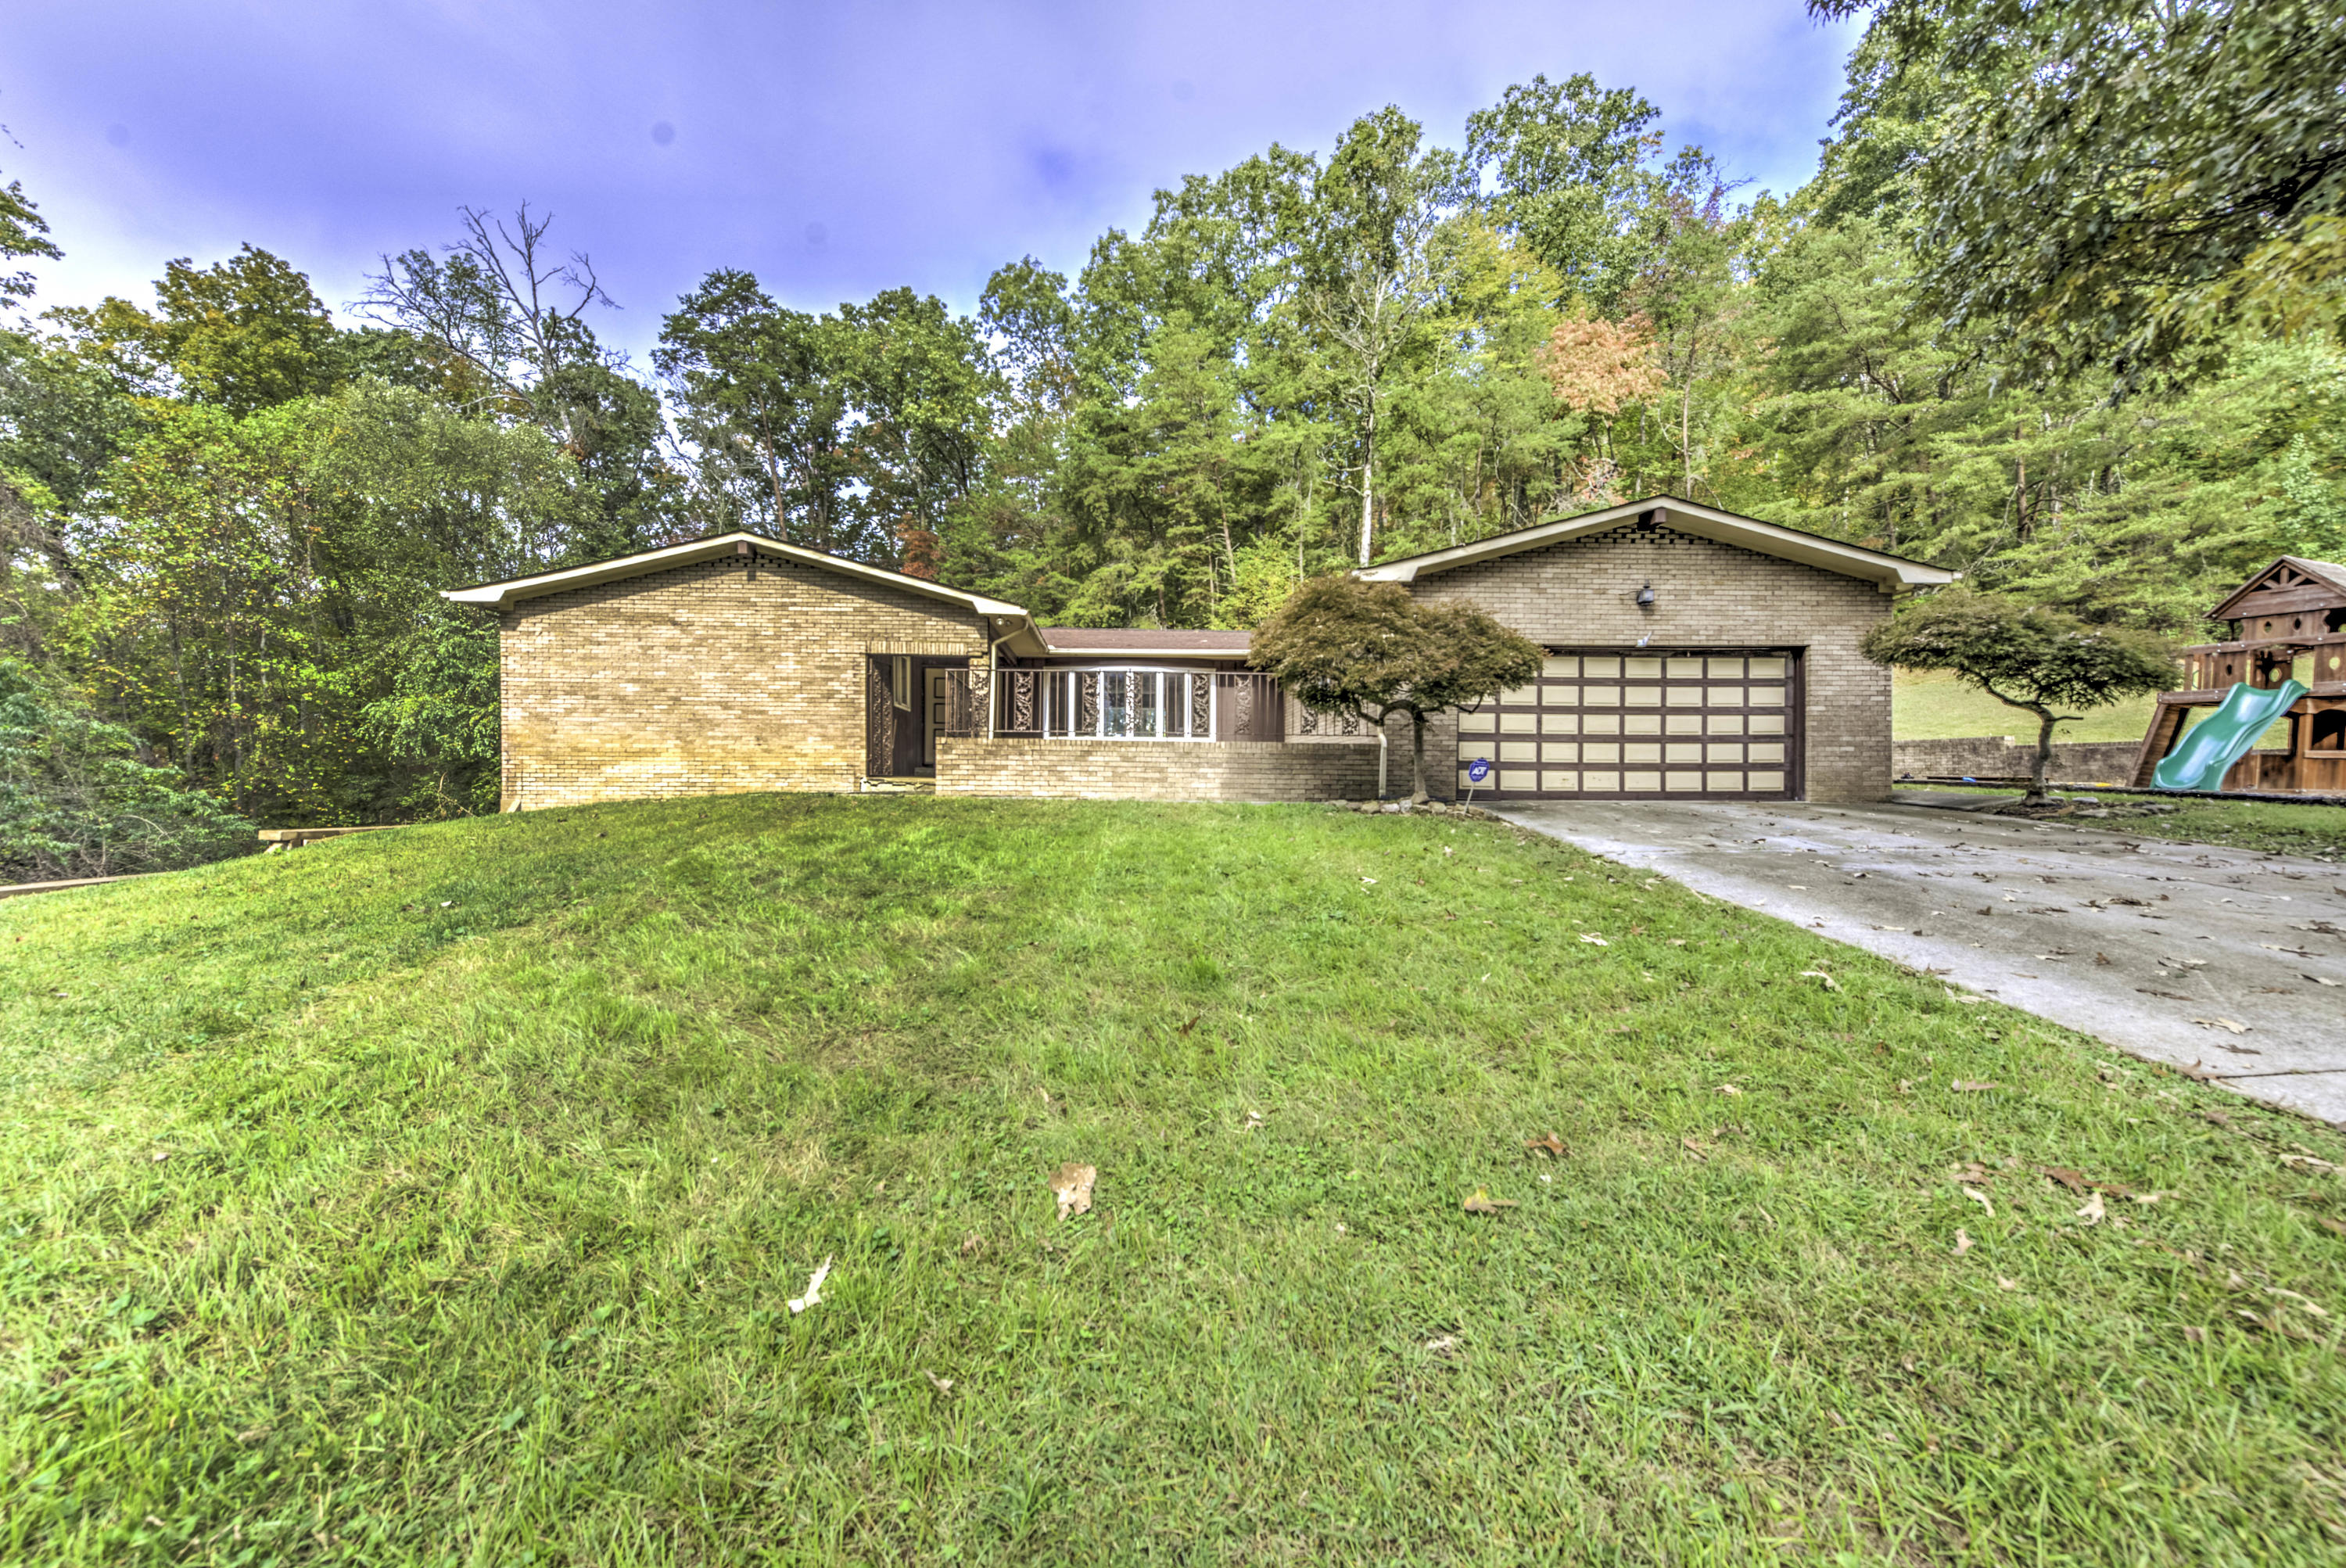 20191023213322219531000000-o Listings anderson county homes for sale